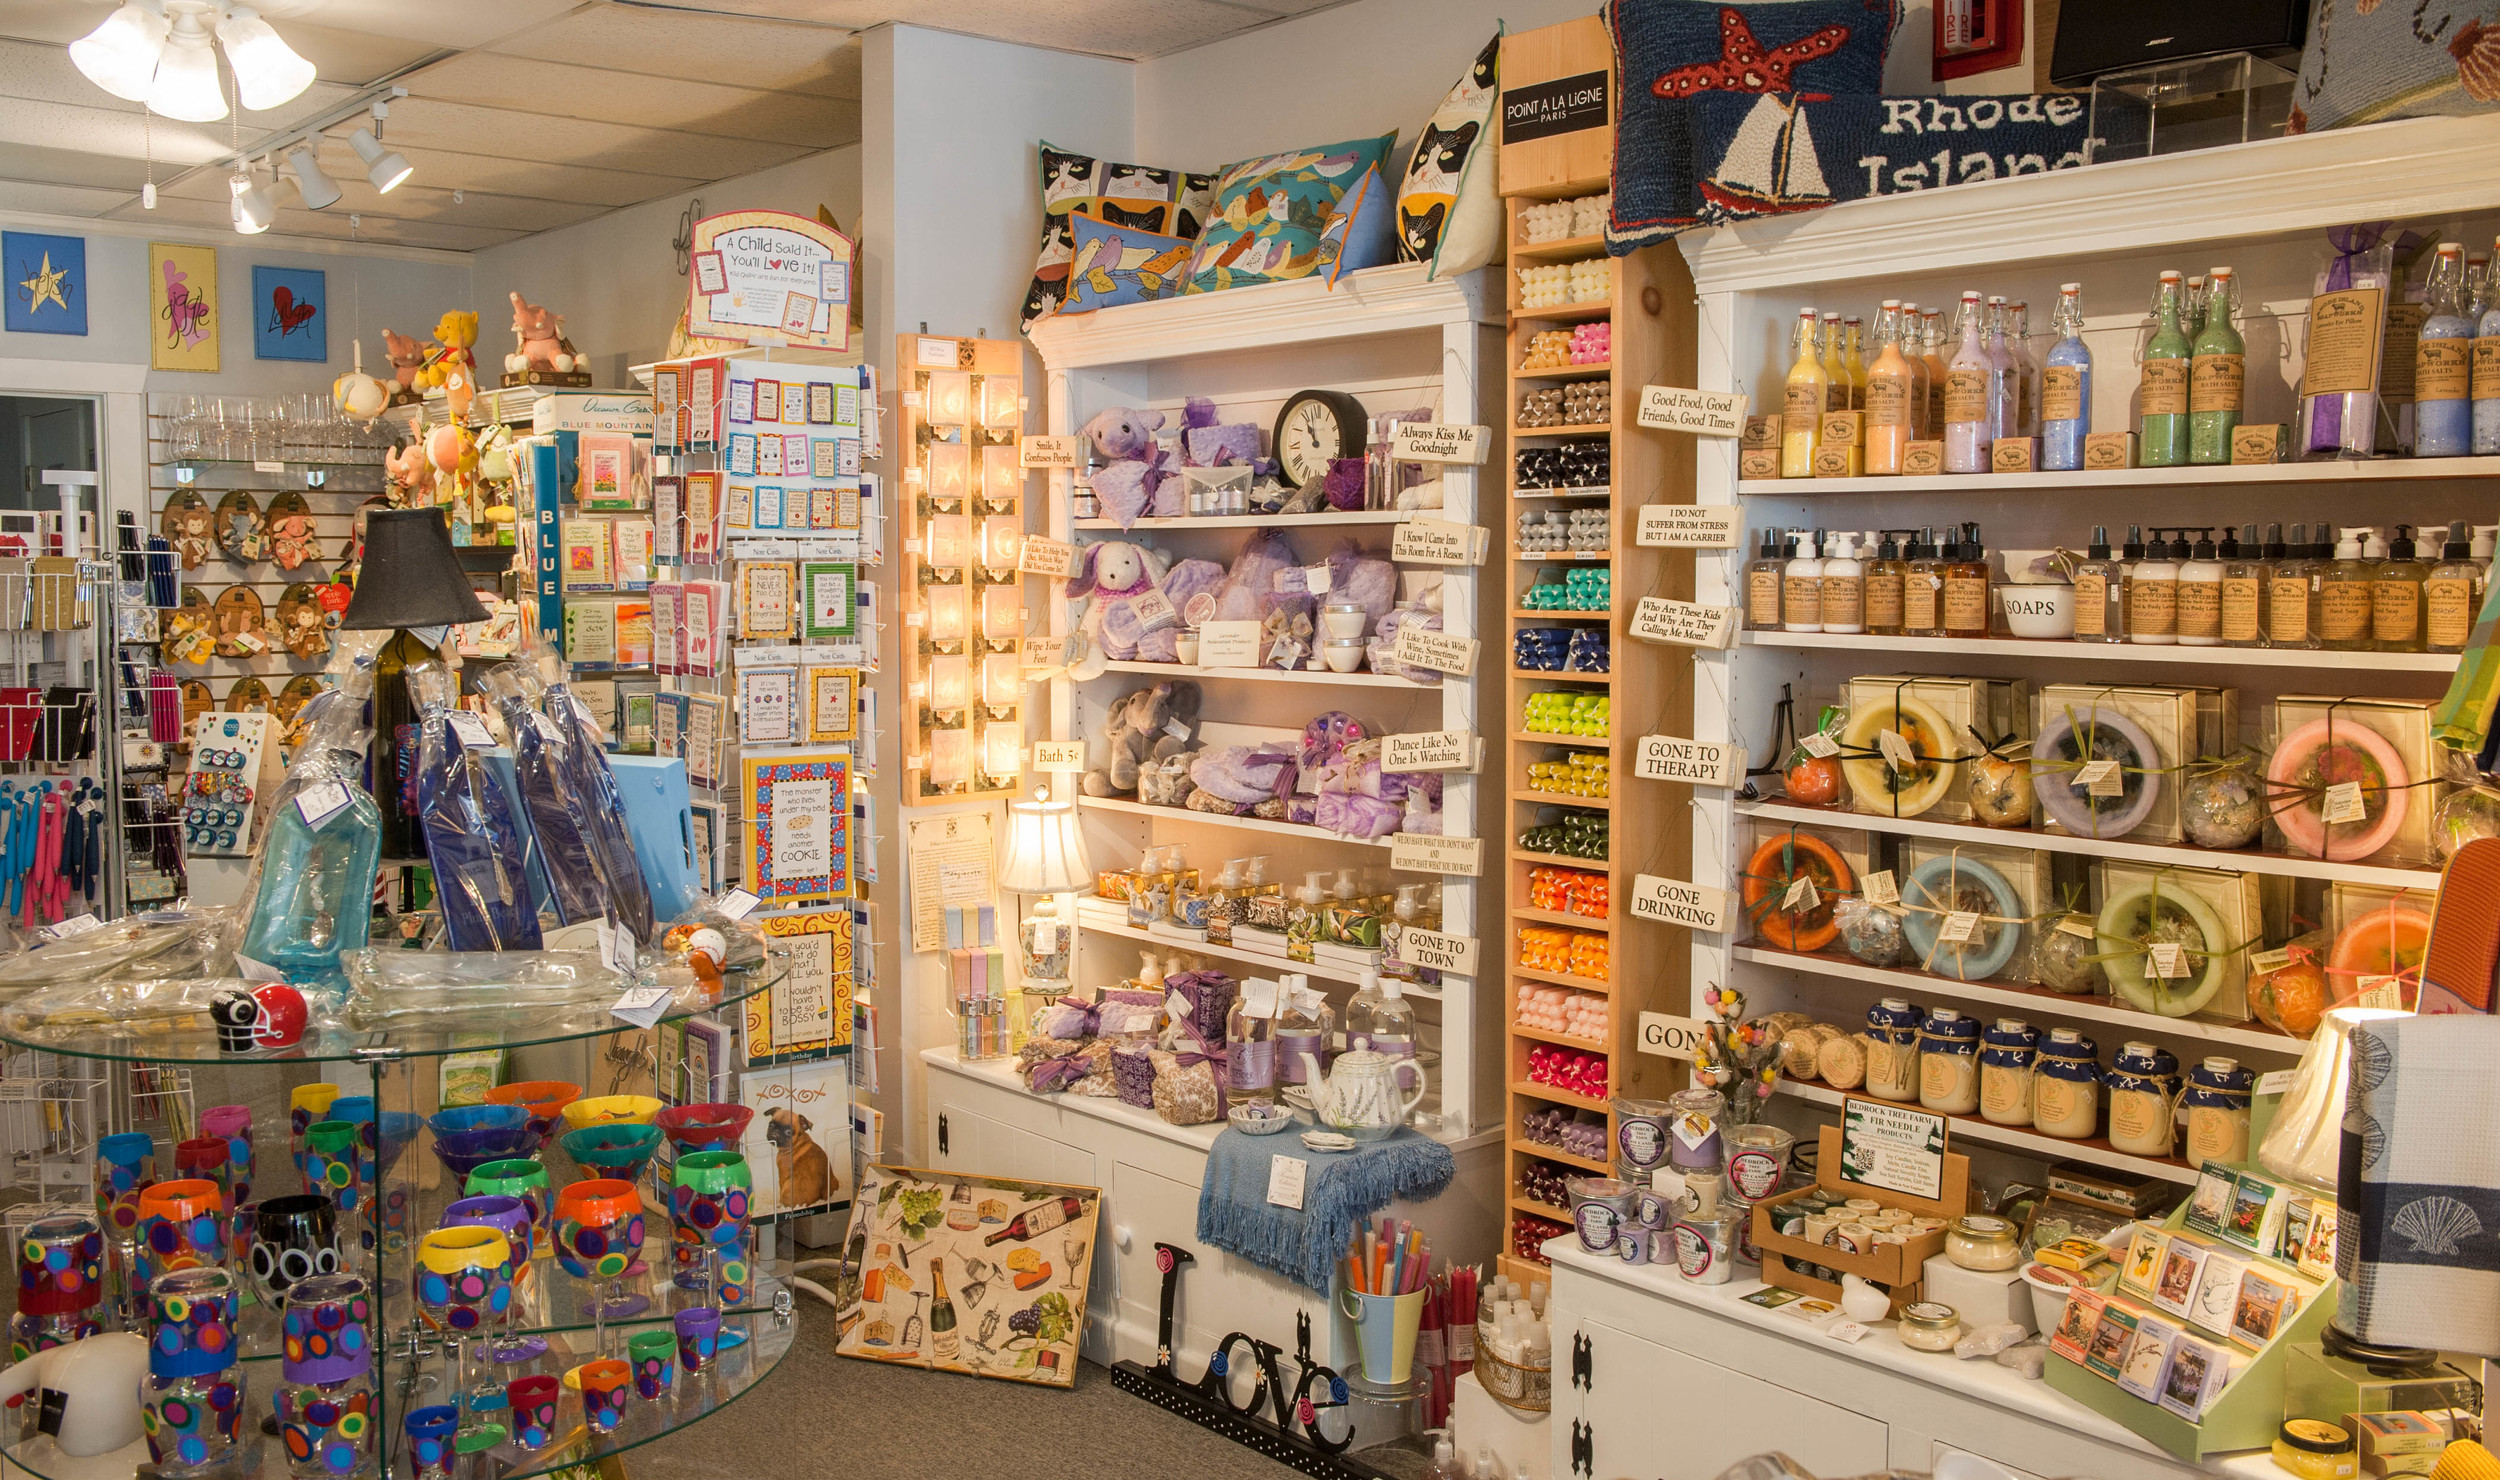 Lulabells carries glassware, candles, plush toys and cards in North Kingstown, Rhode Island.